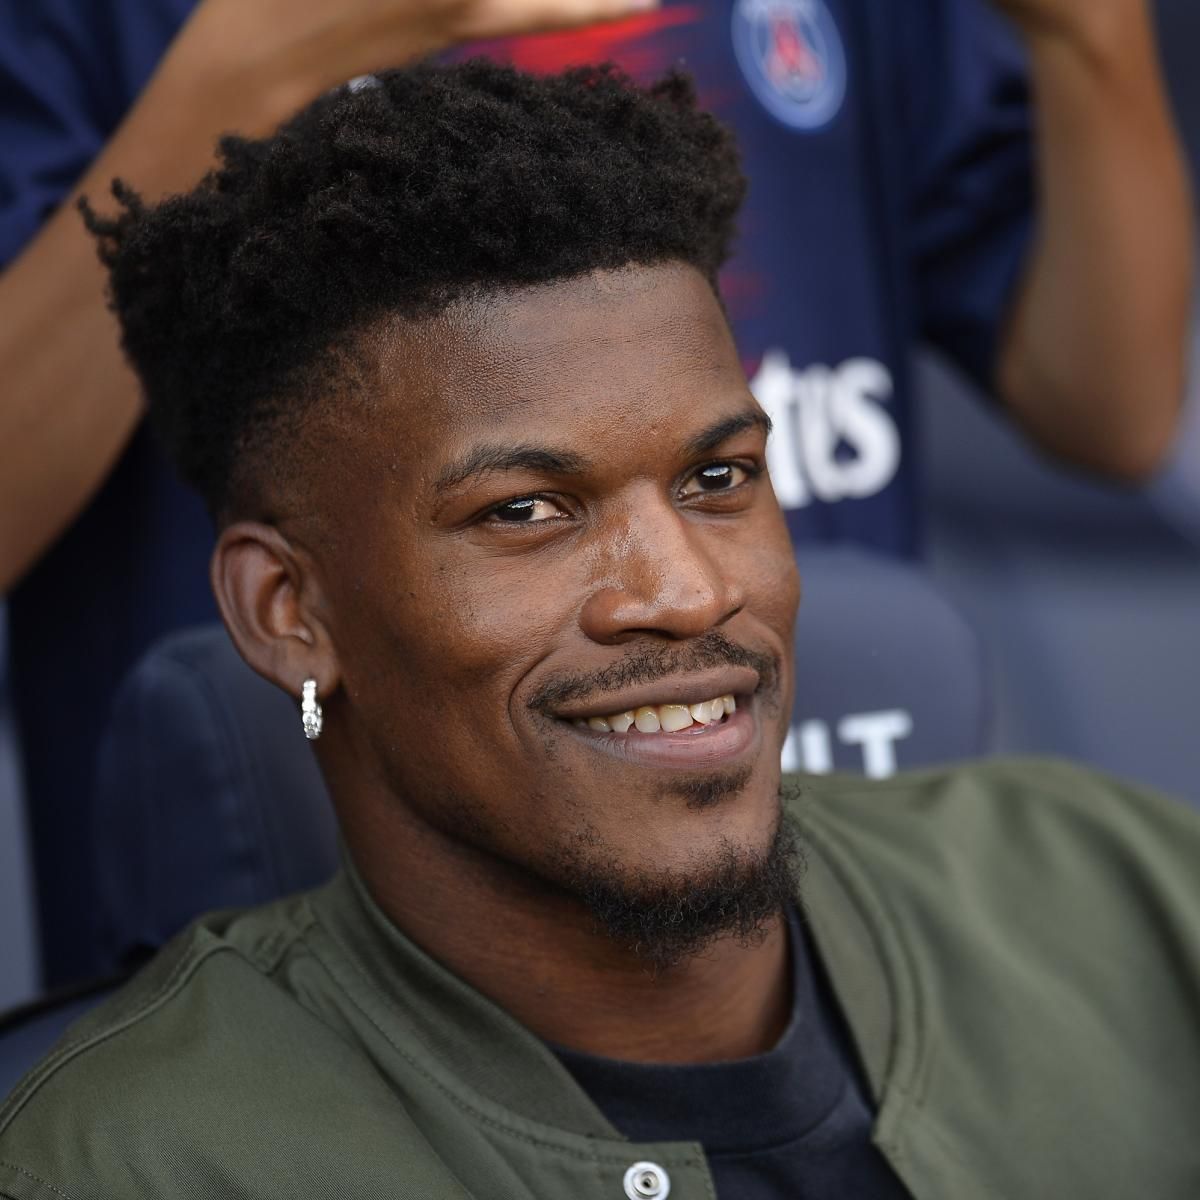 Jimmy Butler Trade Rumors Heat Deal Close Until T Wolves Pushed For More Nba News Karl Anthony Towns Jimmy Butler Haircut